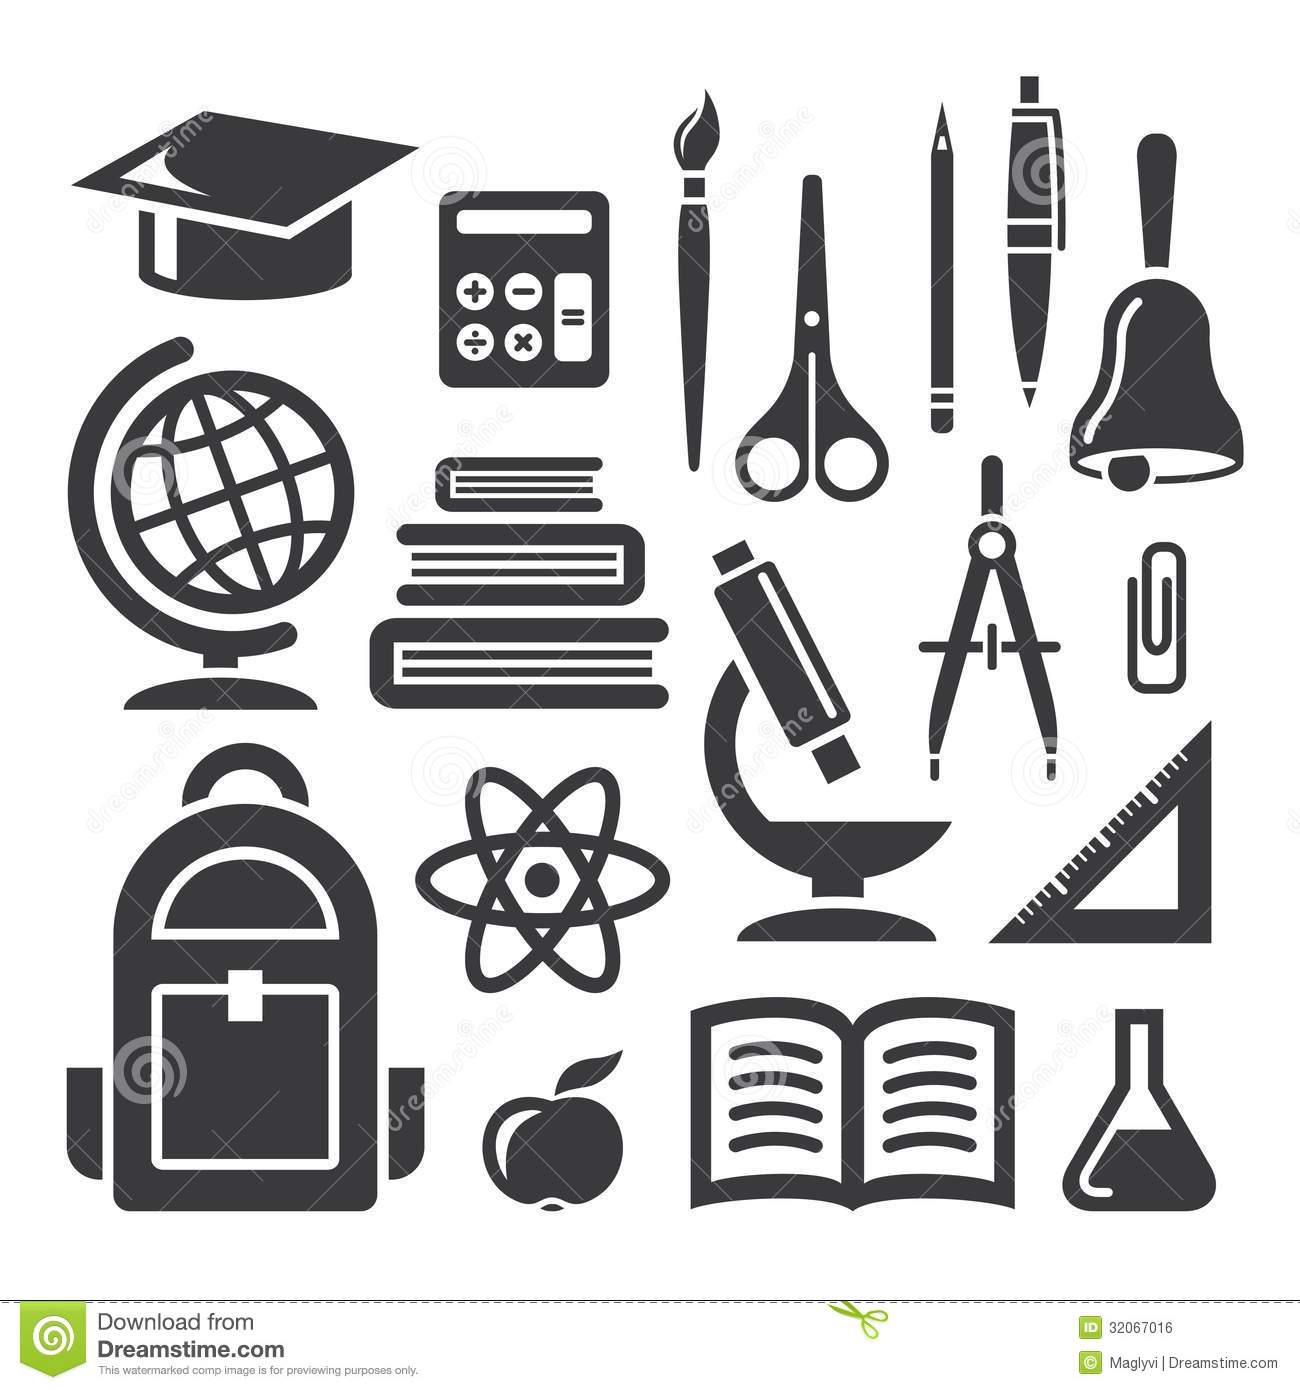 Education And Science Symbols Royalty Free Stock Image.